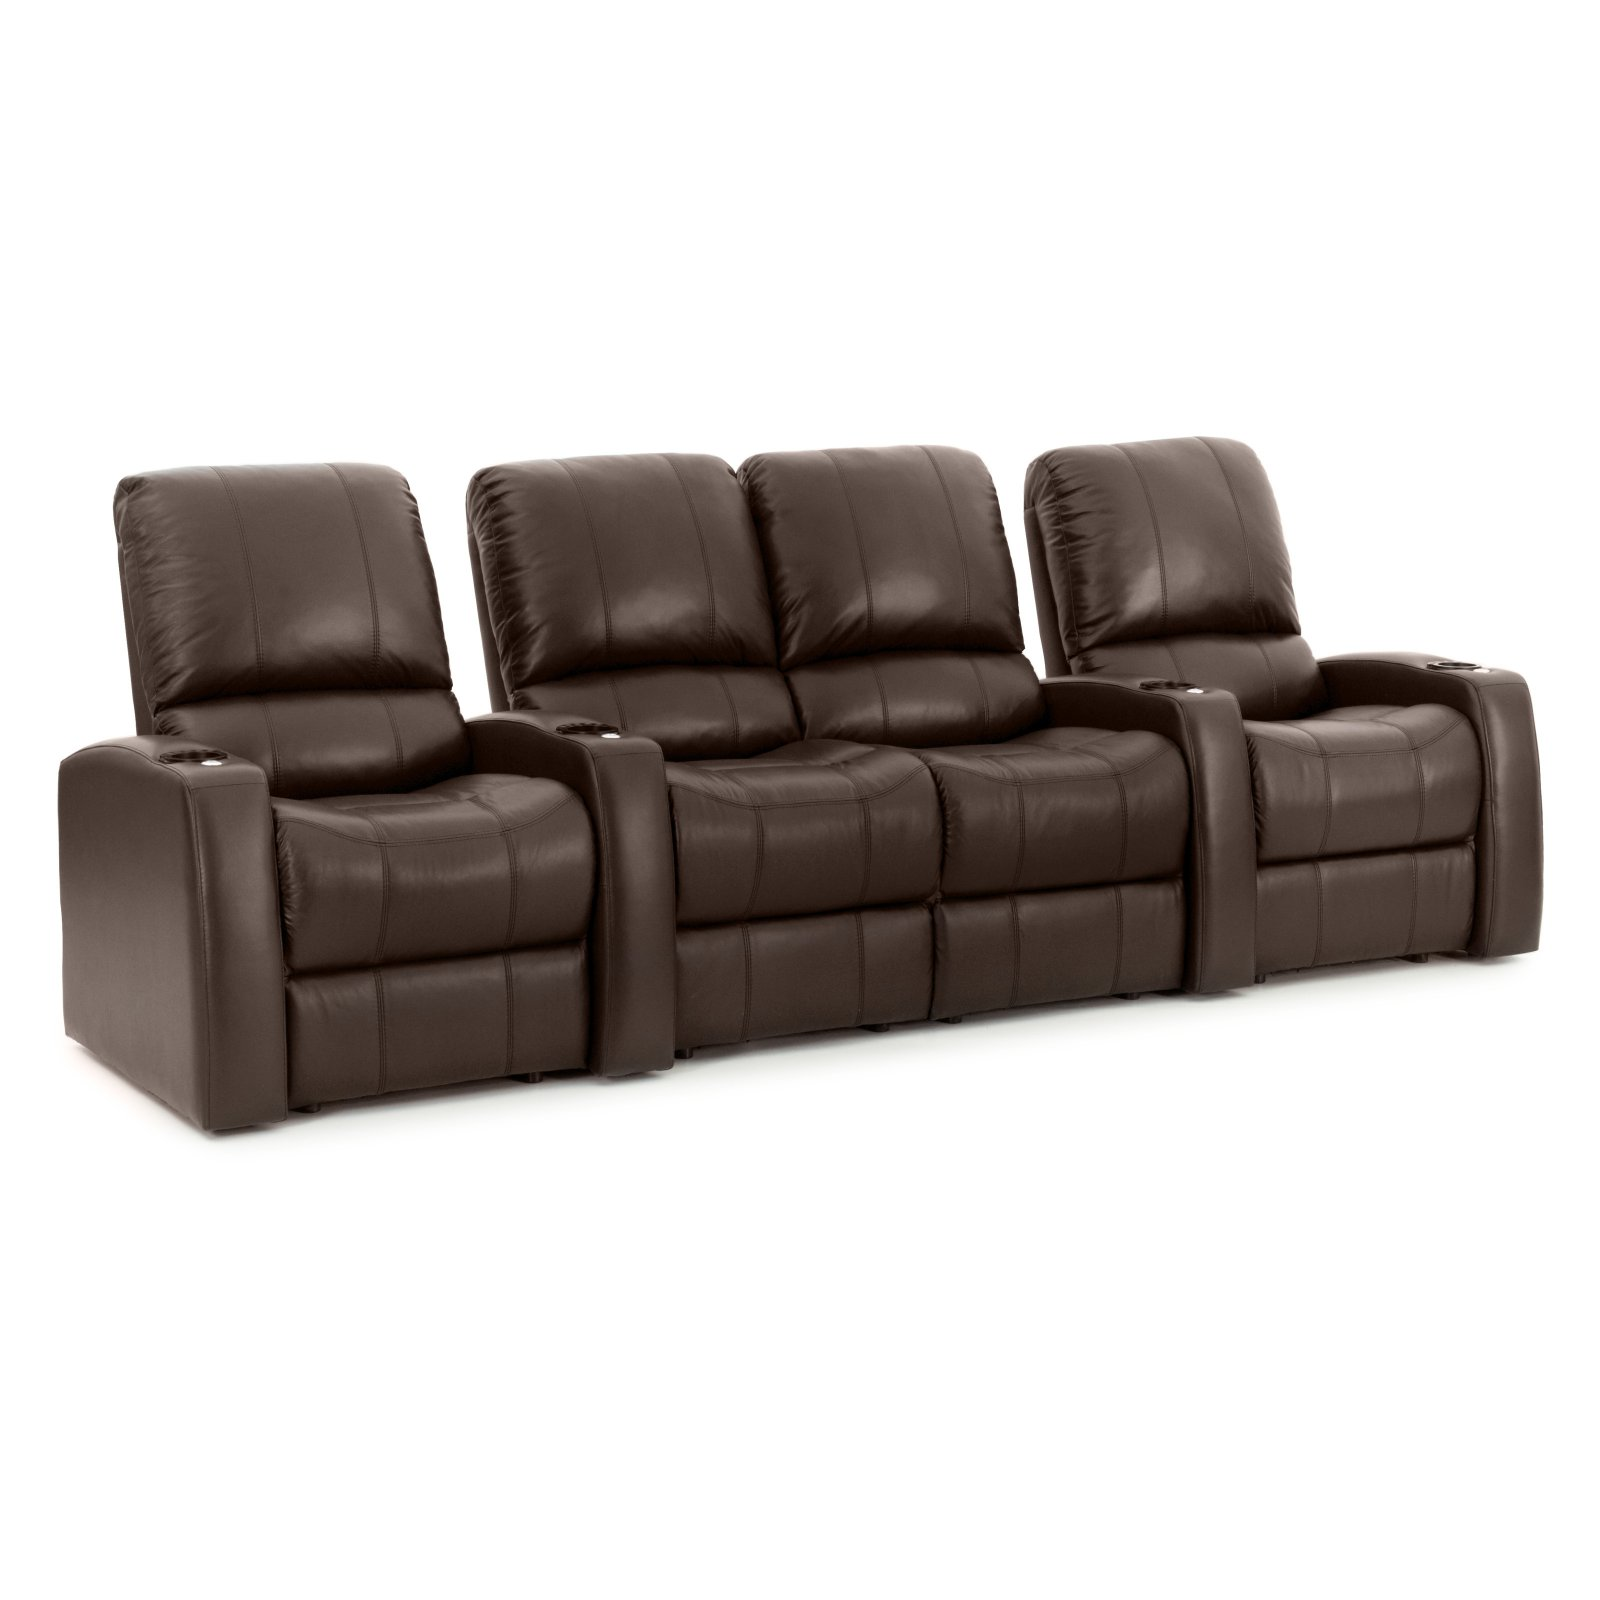 Octane Blaze XL900 4 Seater Middle Loveseat Home Theater Seating